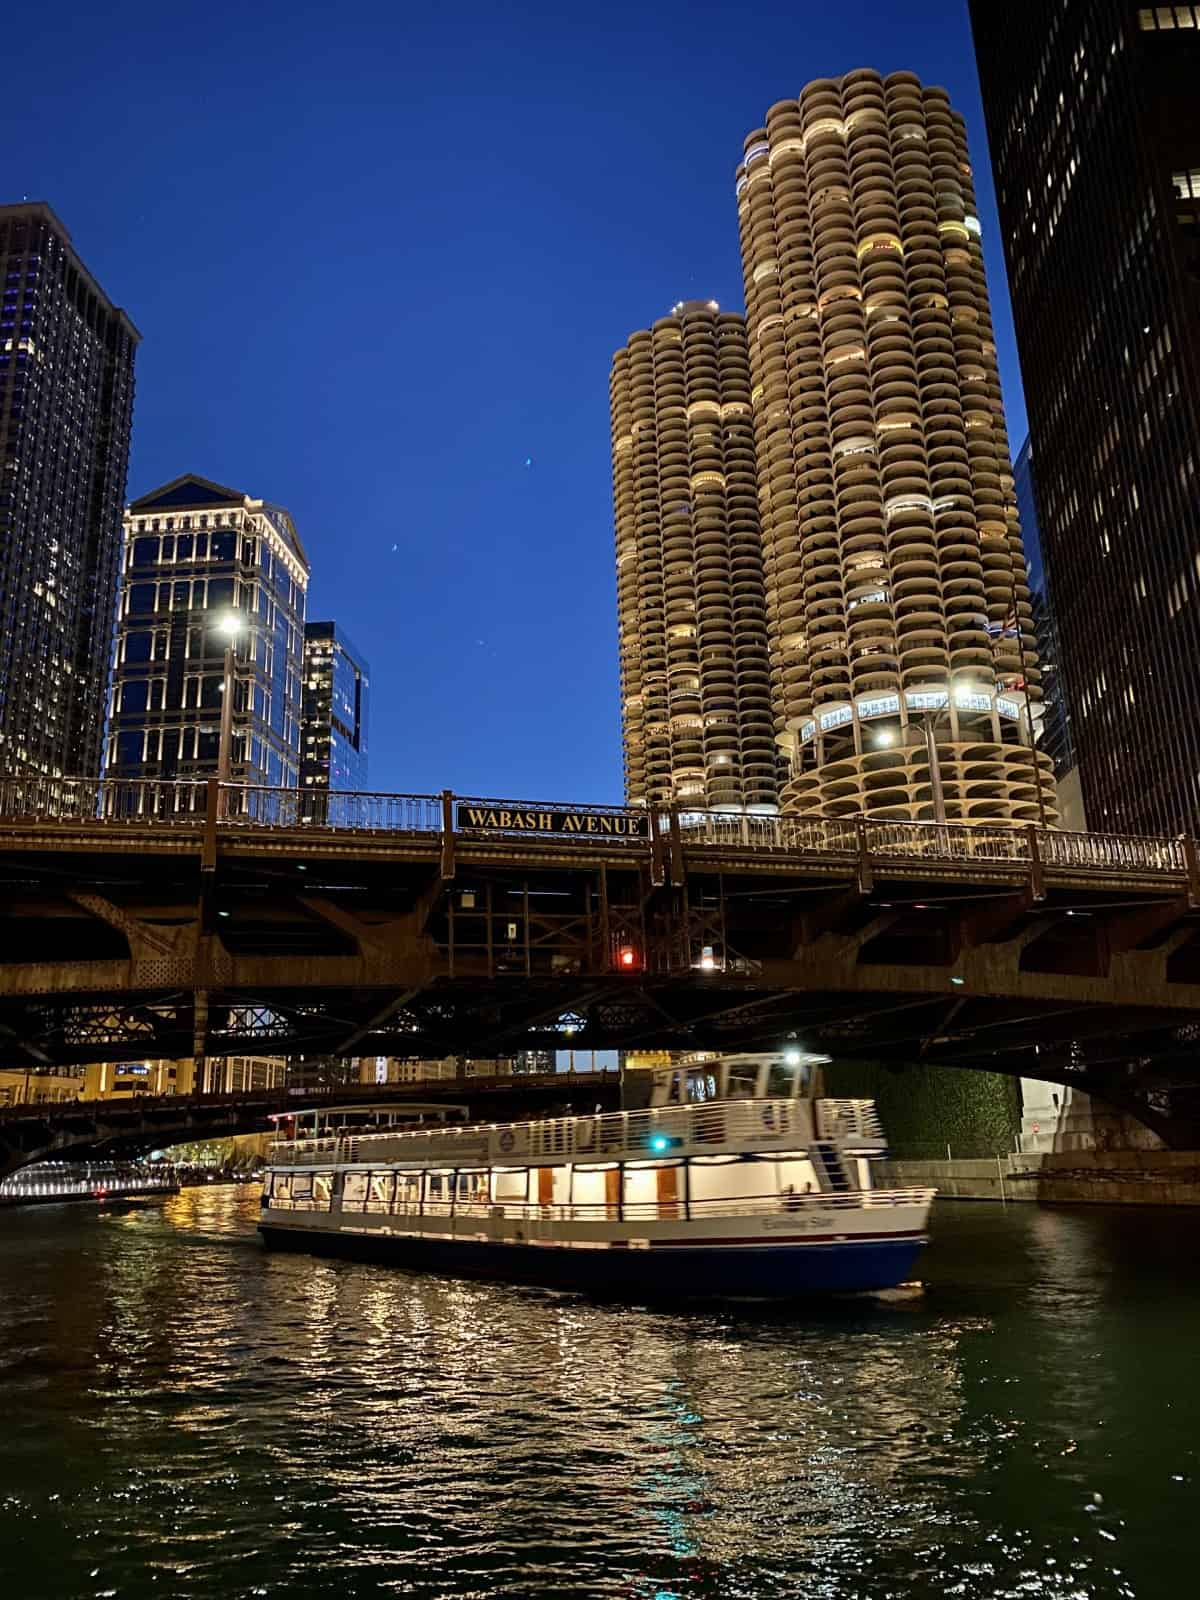 Things to do in Chicago - explore the city at night, including the Riverwalk